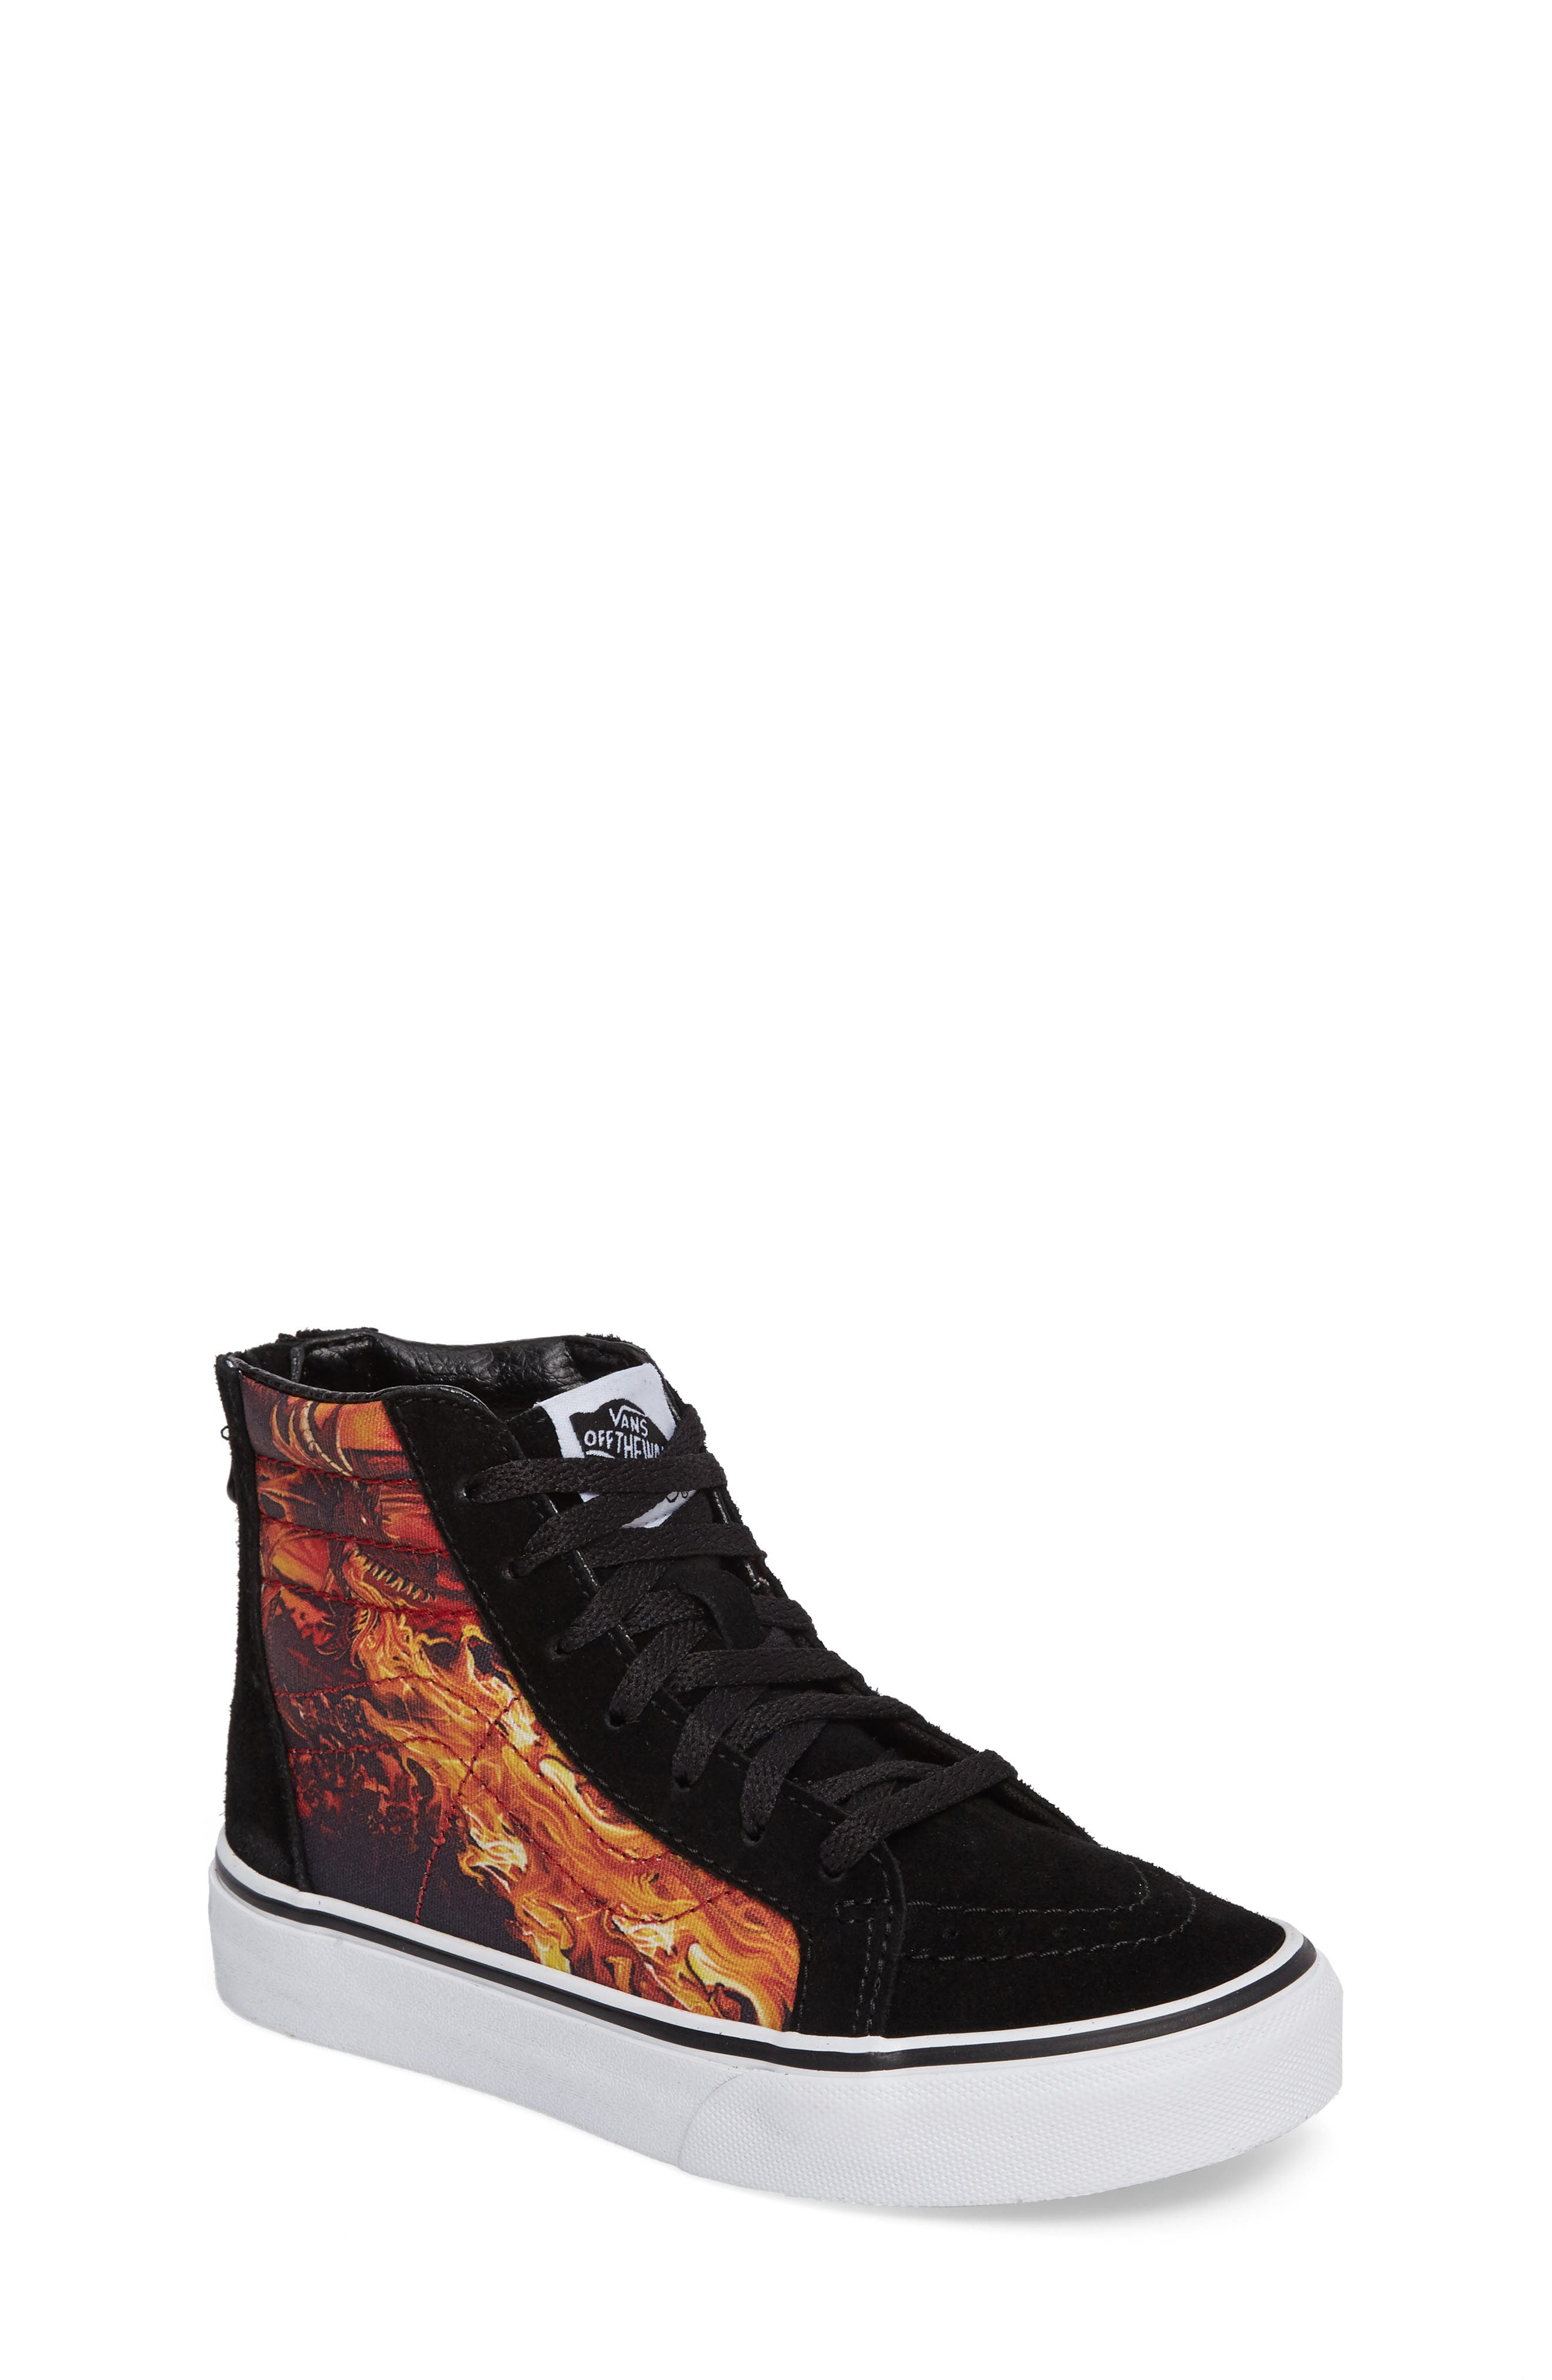 SK8-Hi Dragon Zip Sneaker,                         Main,                         color,